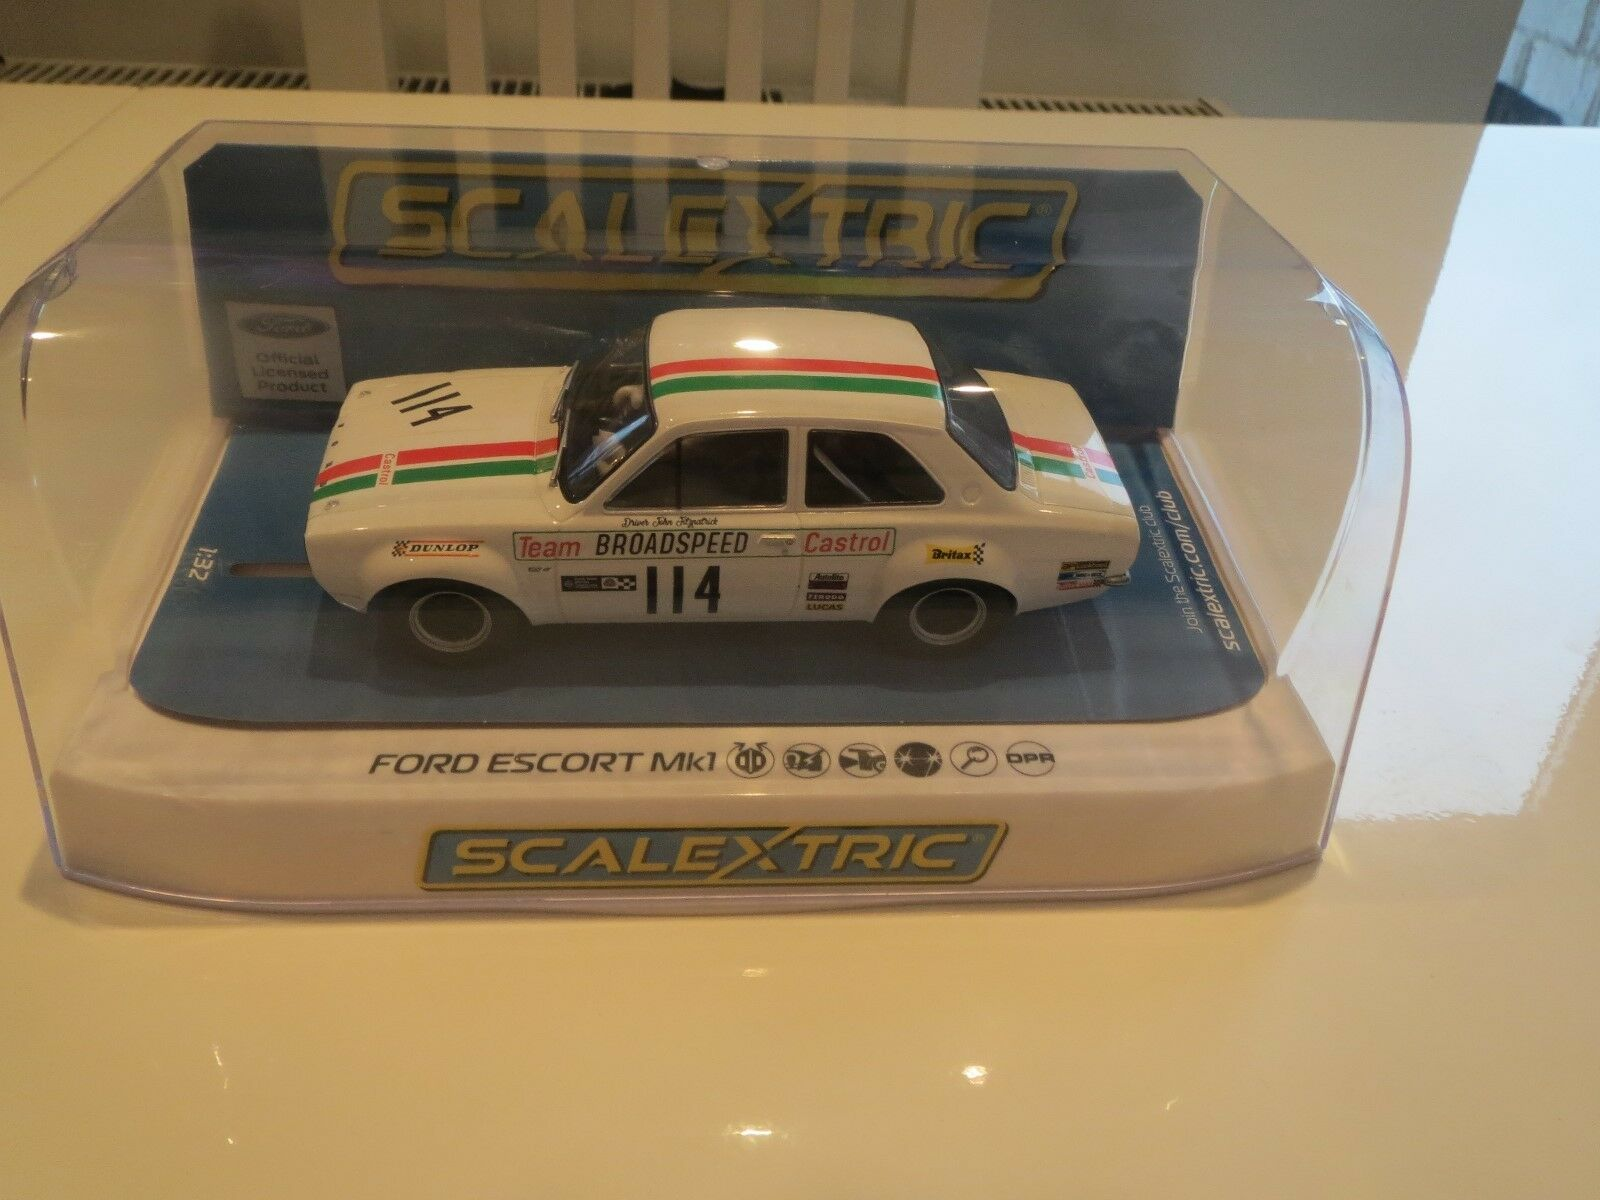 Scalextric C3924 Ford Escort Mk1 100%BRAND NEW SUPERB LOOKING CAR CLASSIC